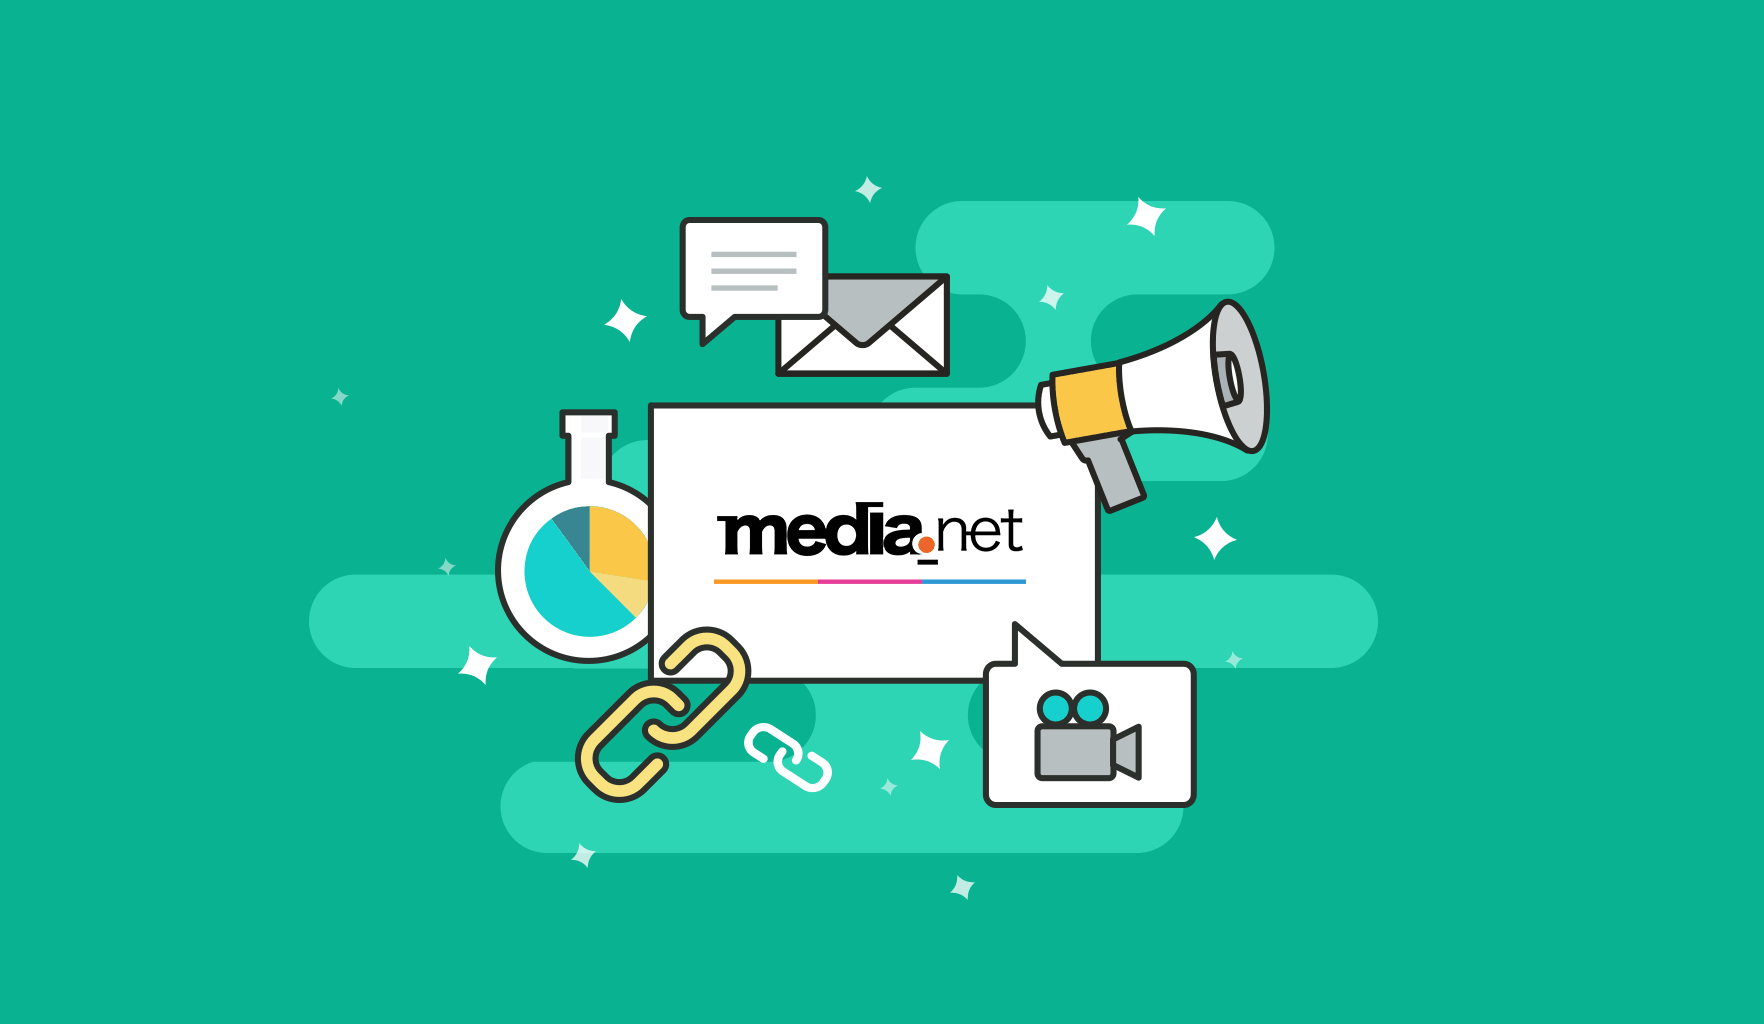 Media net Review & Tutorial: The Network That Earns Us 5x